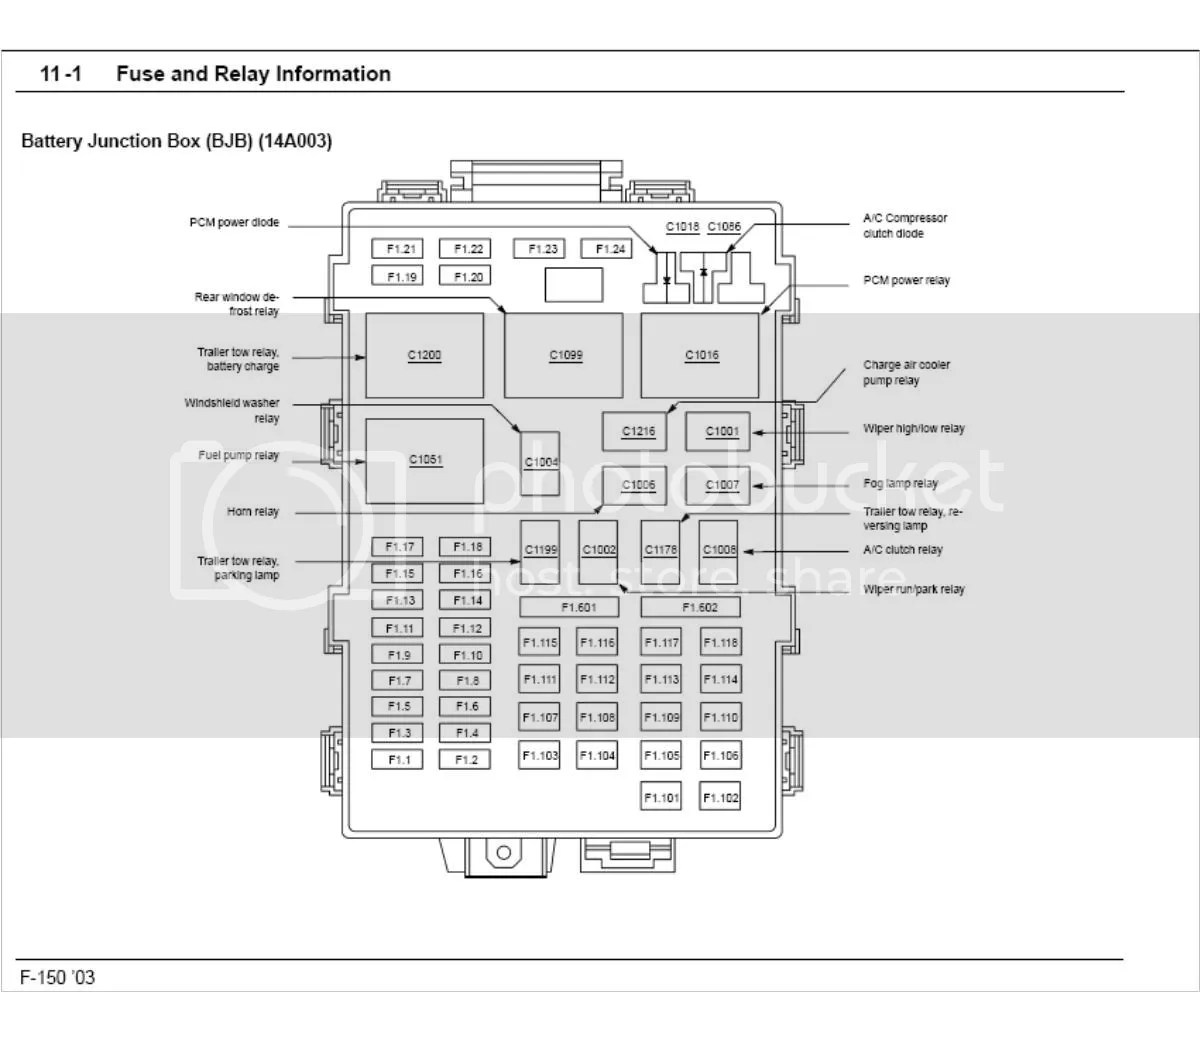 hight resolution of fuse diagram for 2003 f150 4 6l ford f150 forum 2003 ford explorer fuse box diagram 2003 ford fuse box